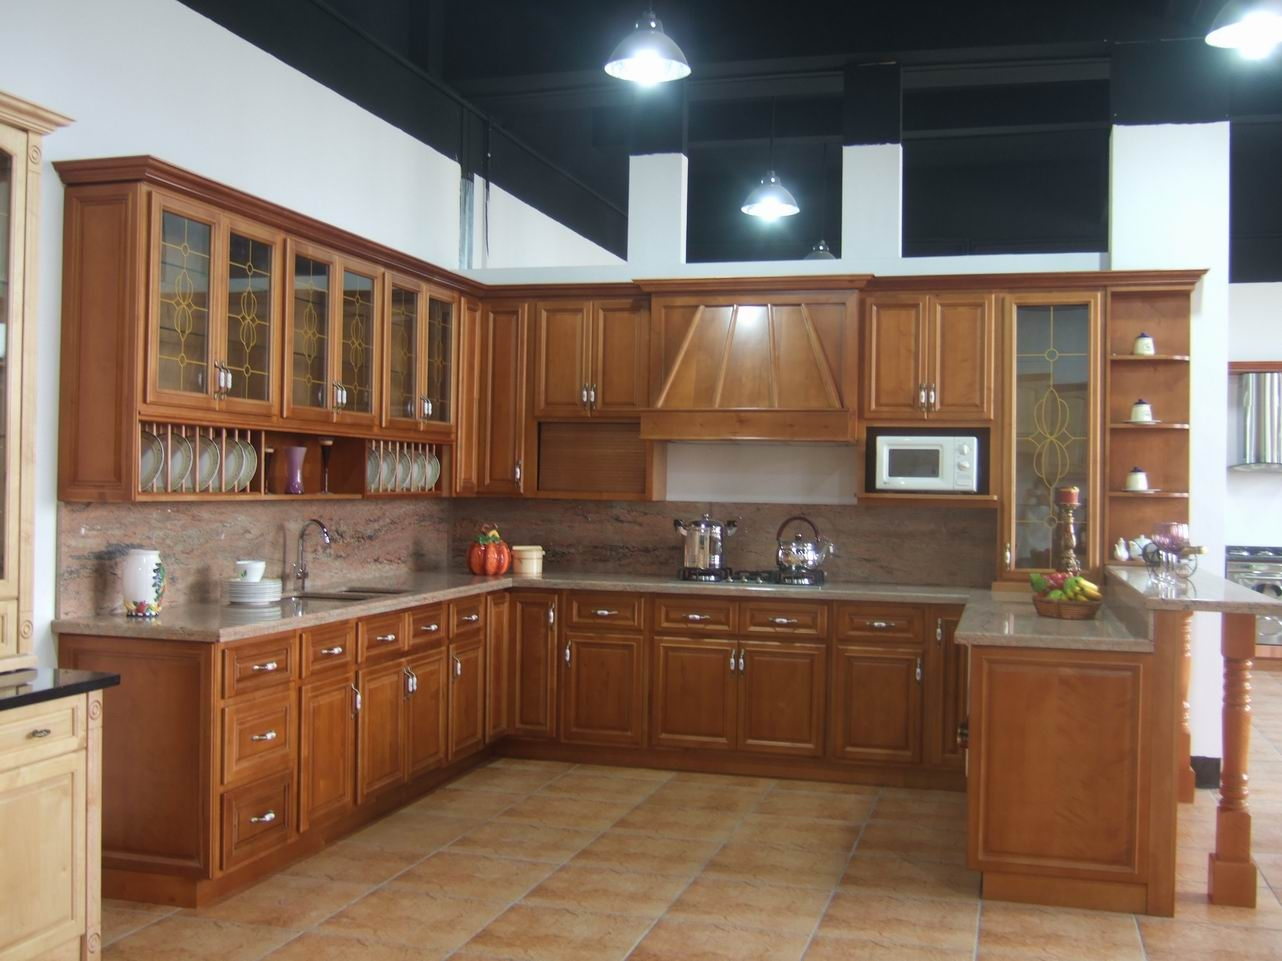 Permalink to Kitchen Cabinet Designs Photo Gallery